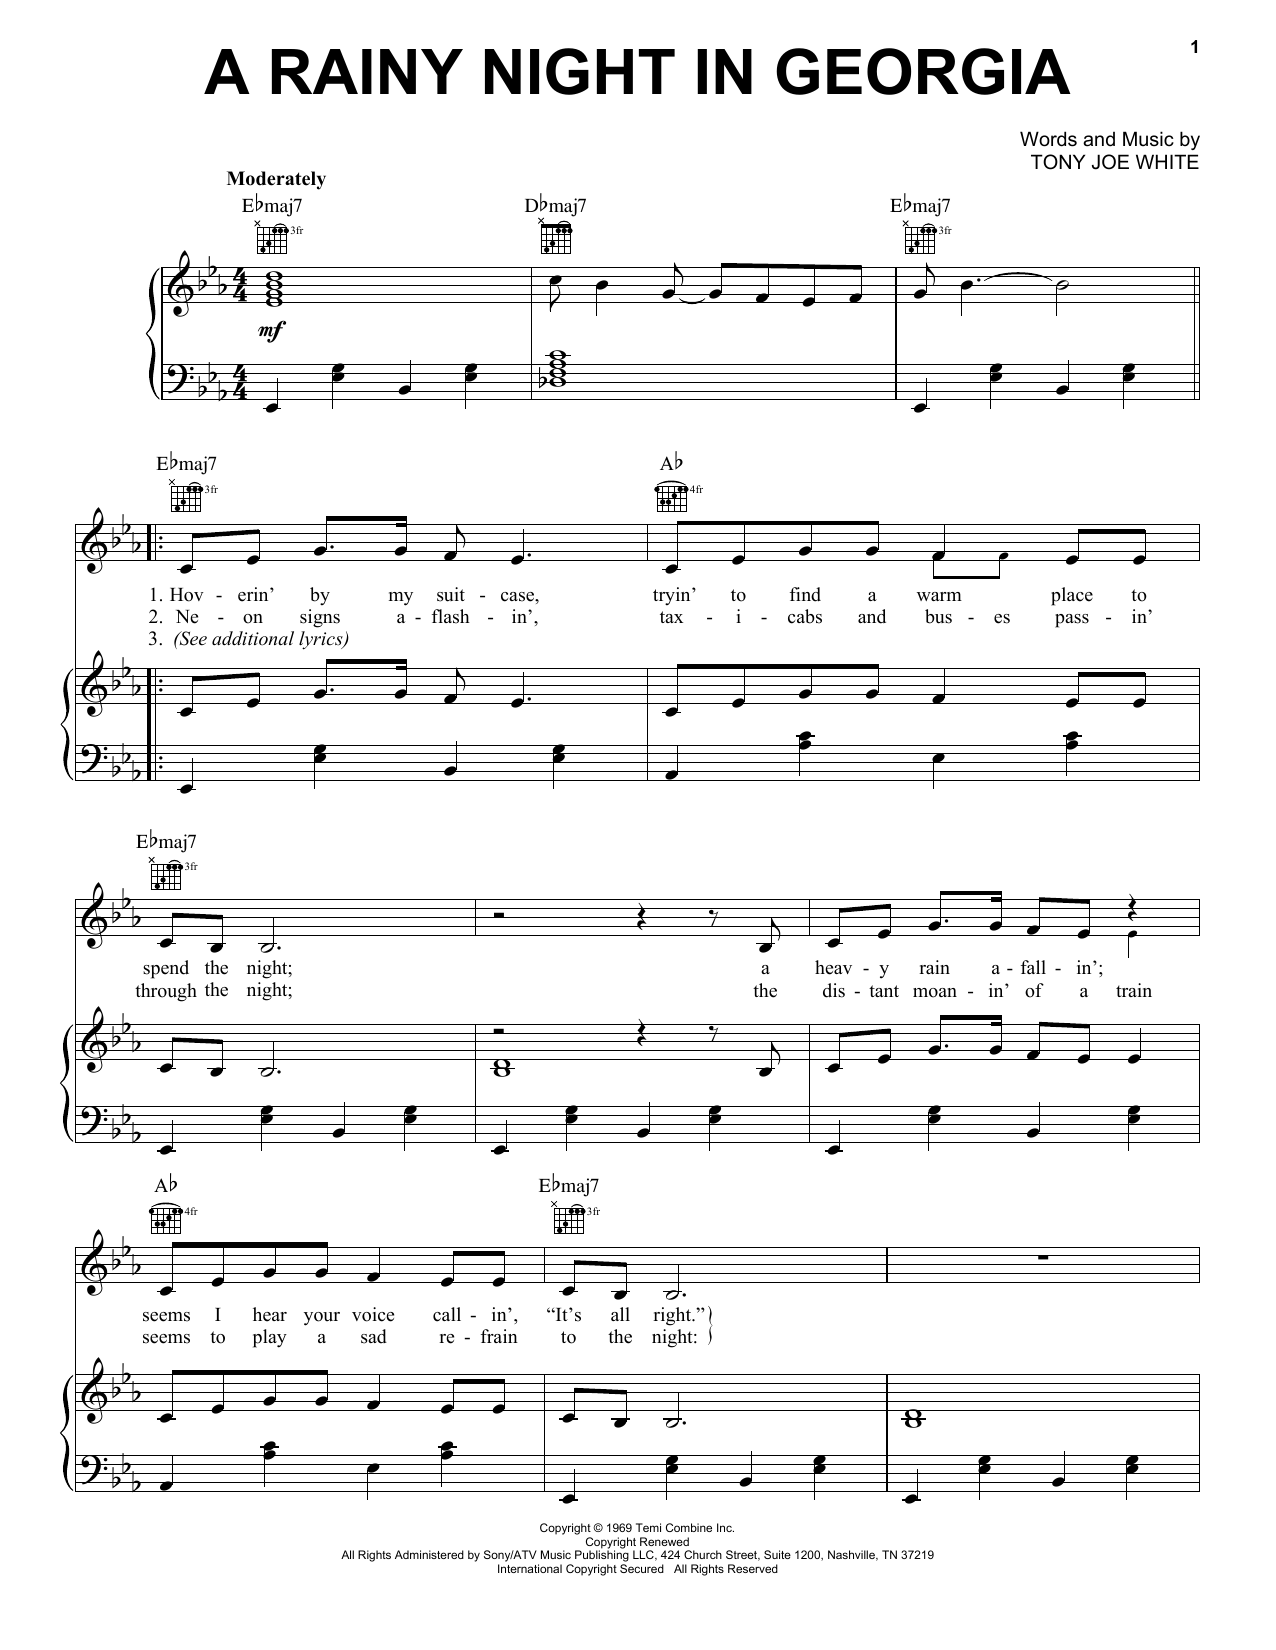 A Rainy Night In Georgia Sheet Music